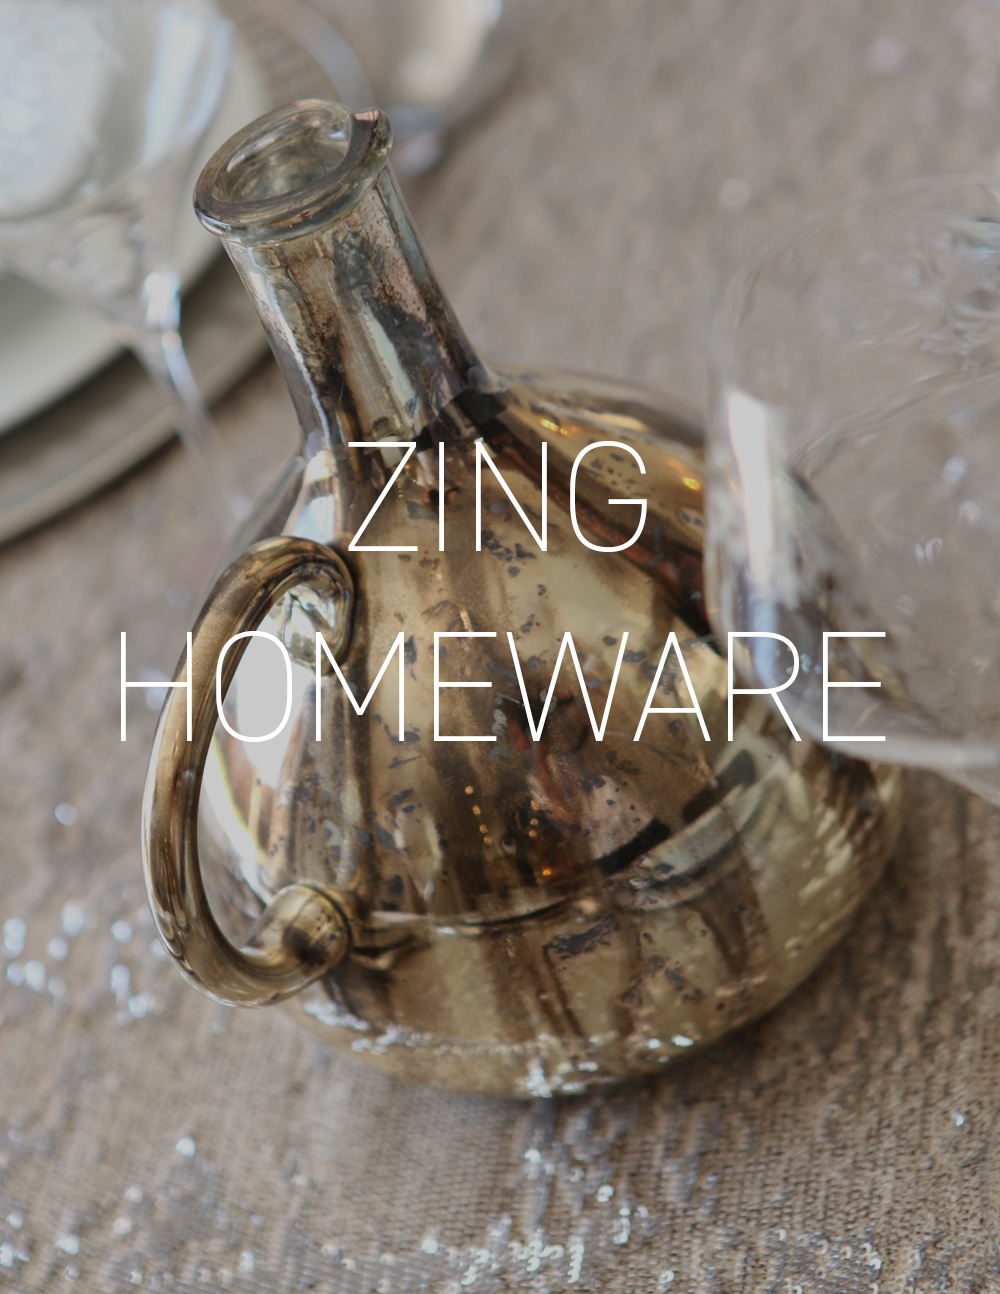 Zing Home composite.jpg